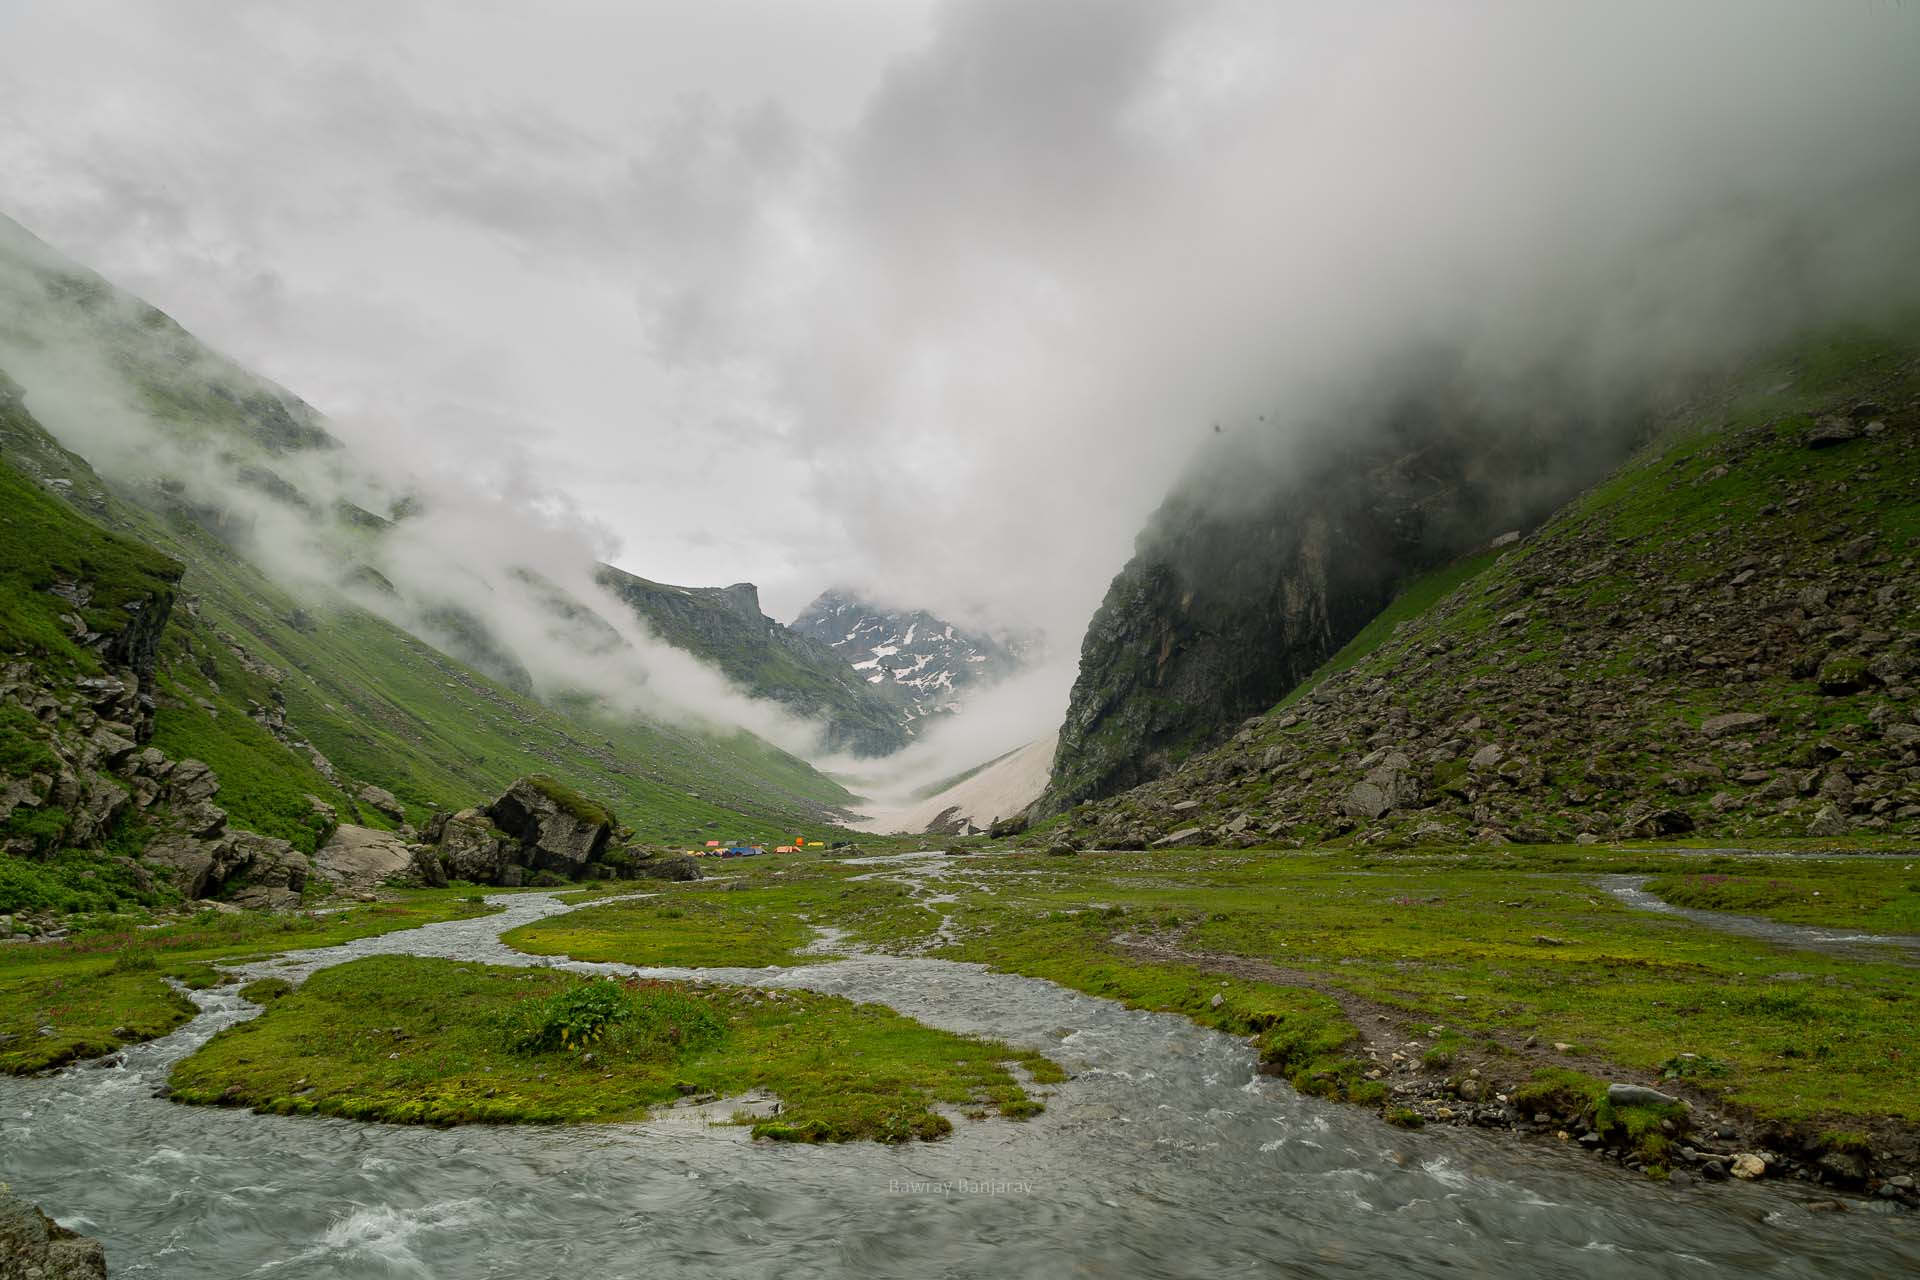 balu ka ghera campsite during hampta pass trek